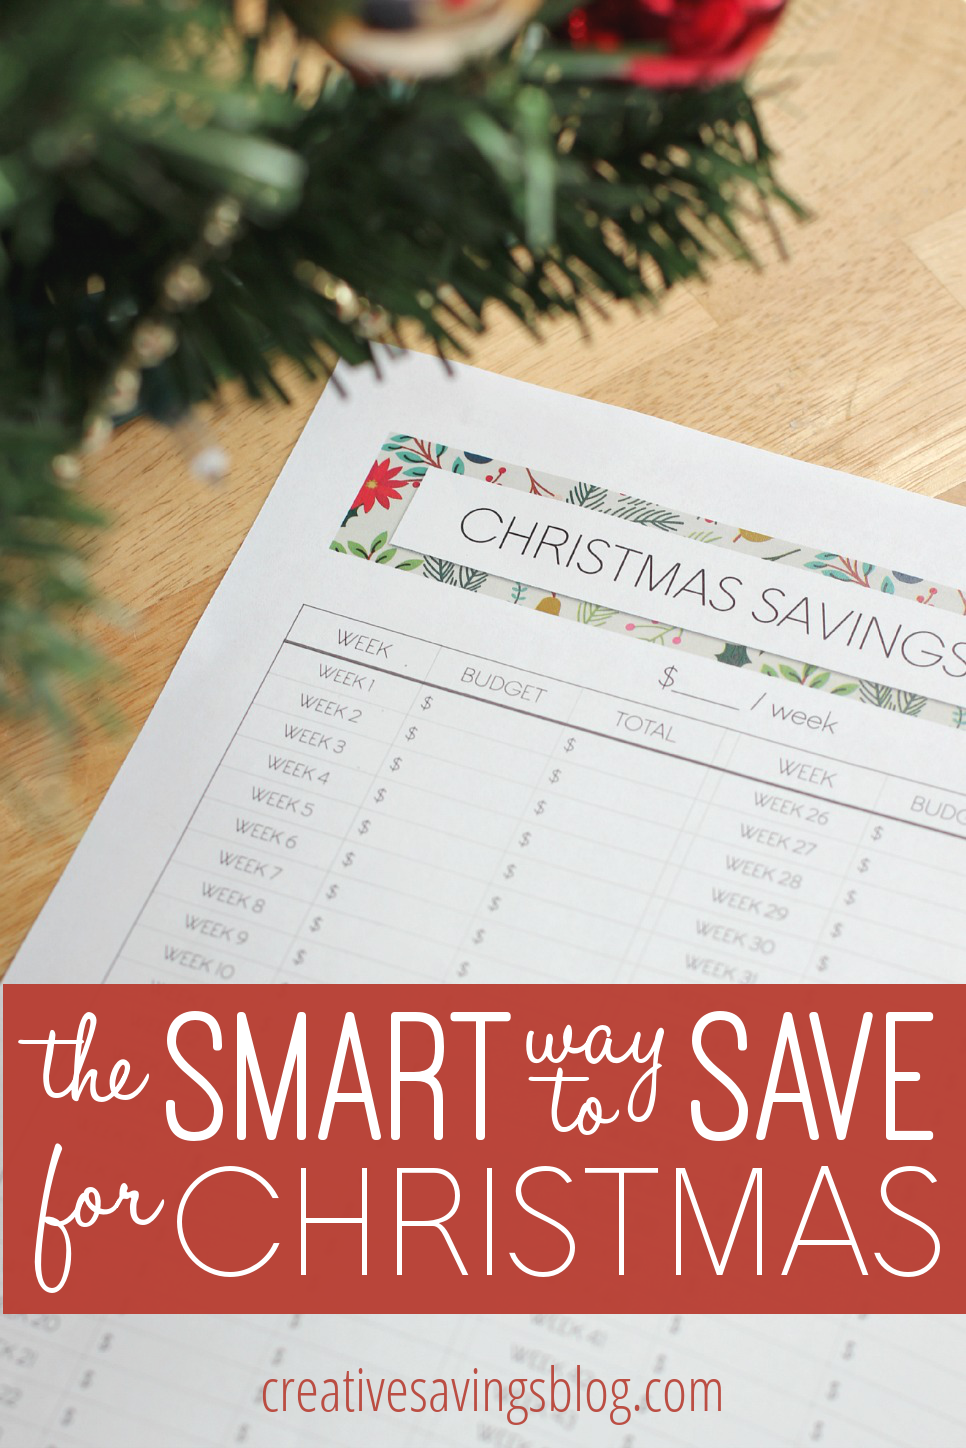 Discover the smart way to save for Christmas with this simple worksheet and never worry about over-paying for gifts again!